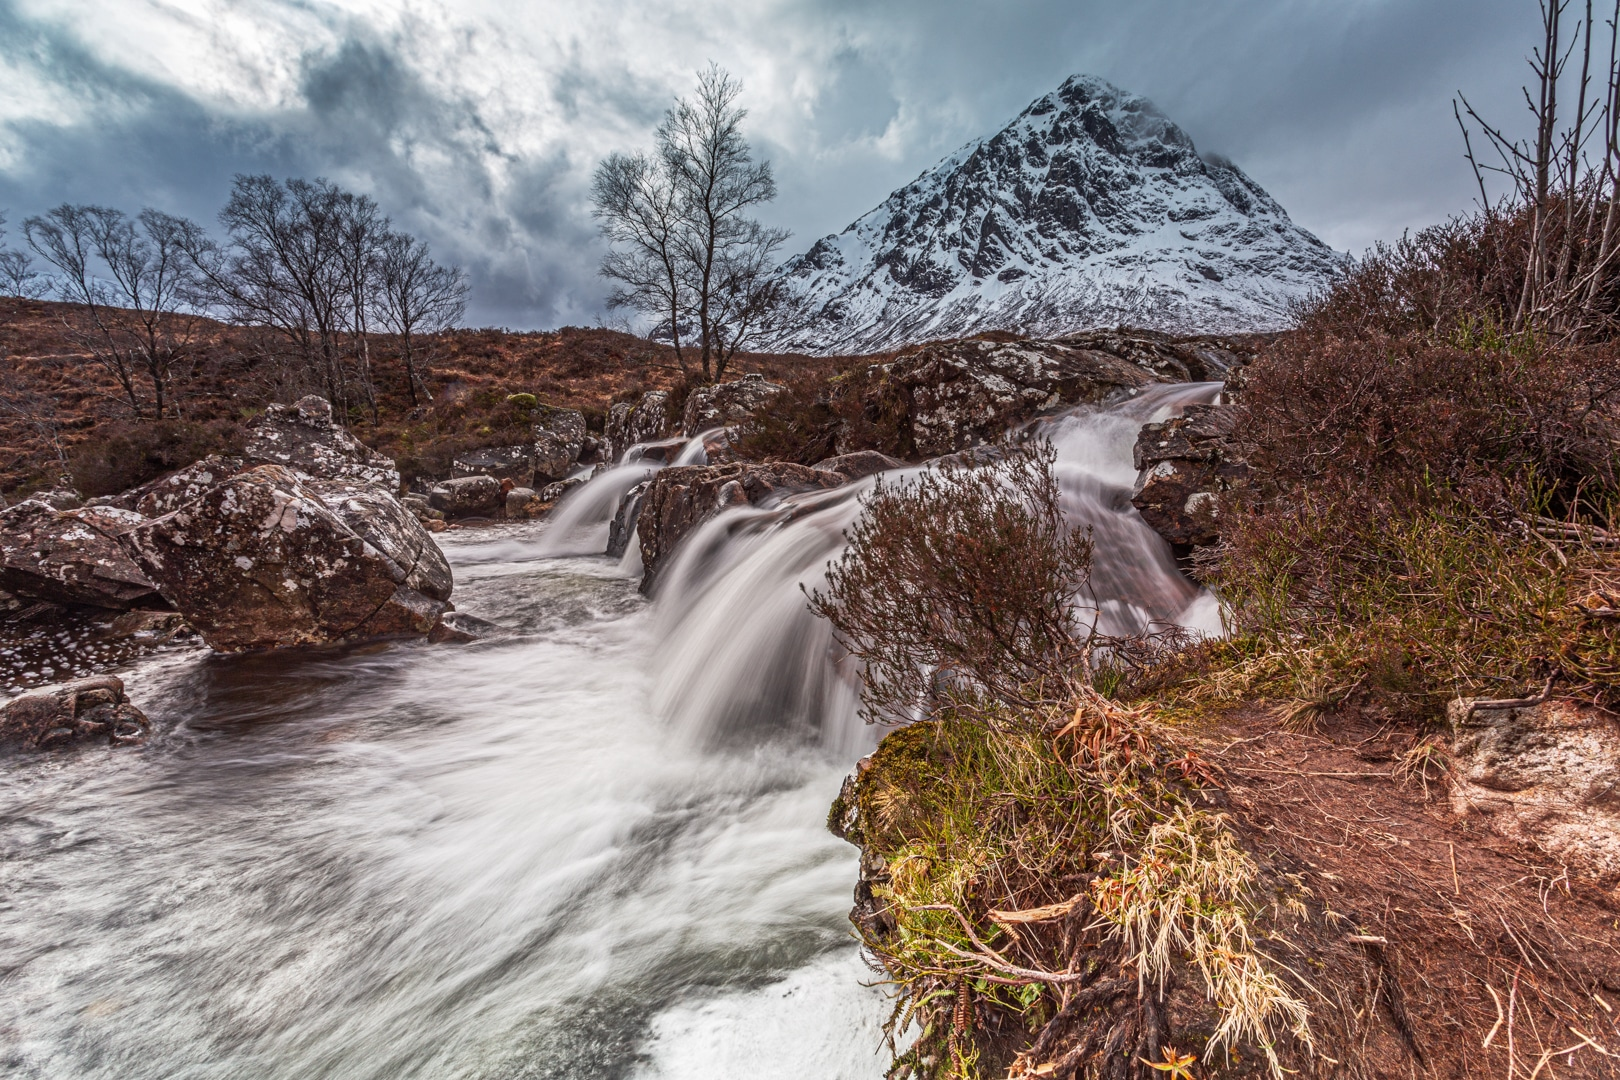 Buachaille Etive Mor winter 2